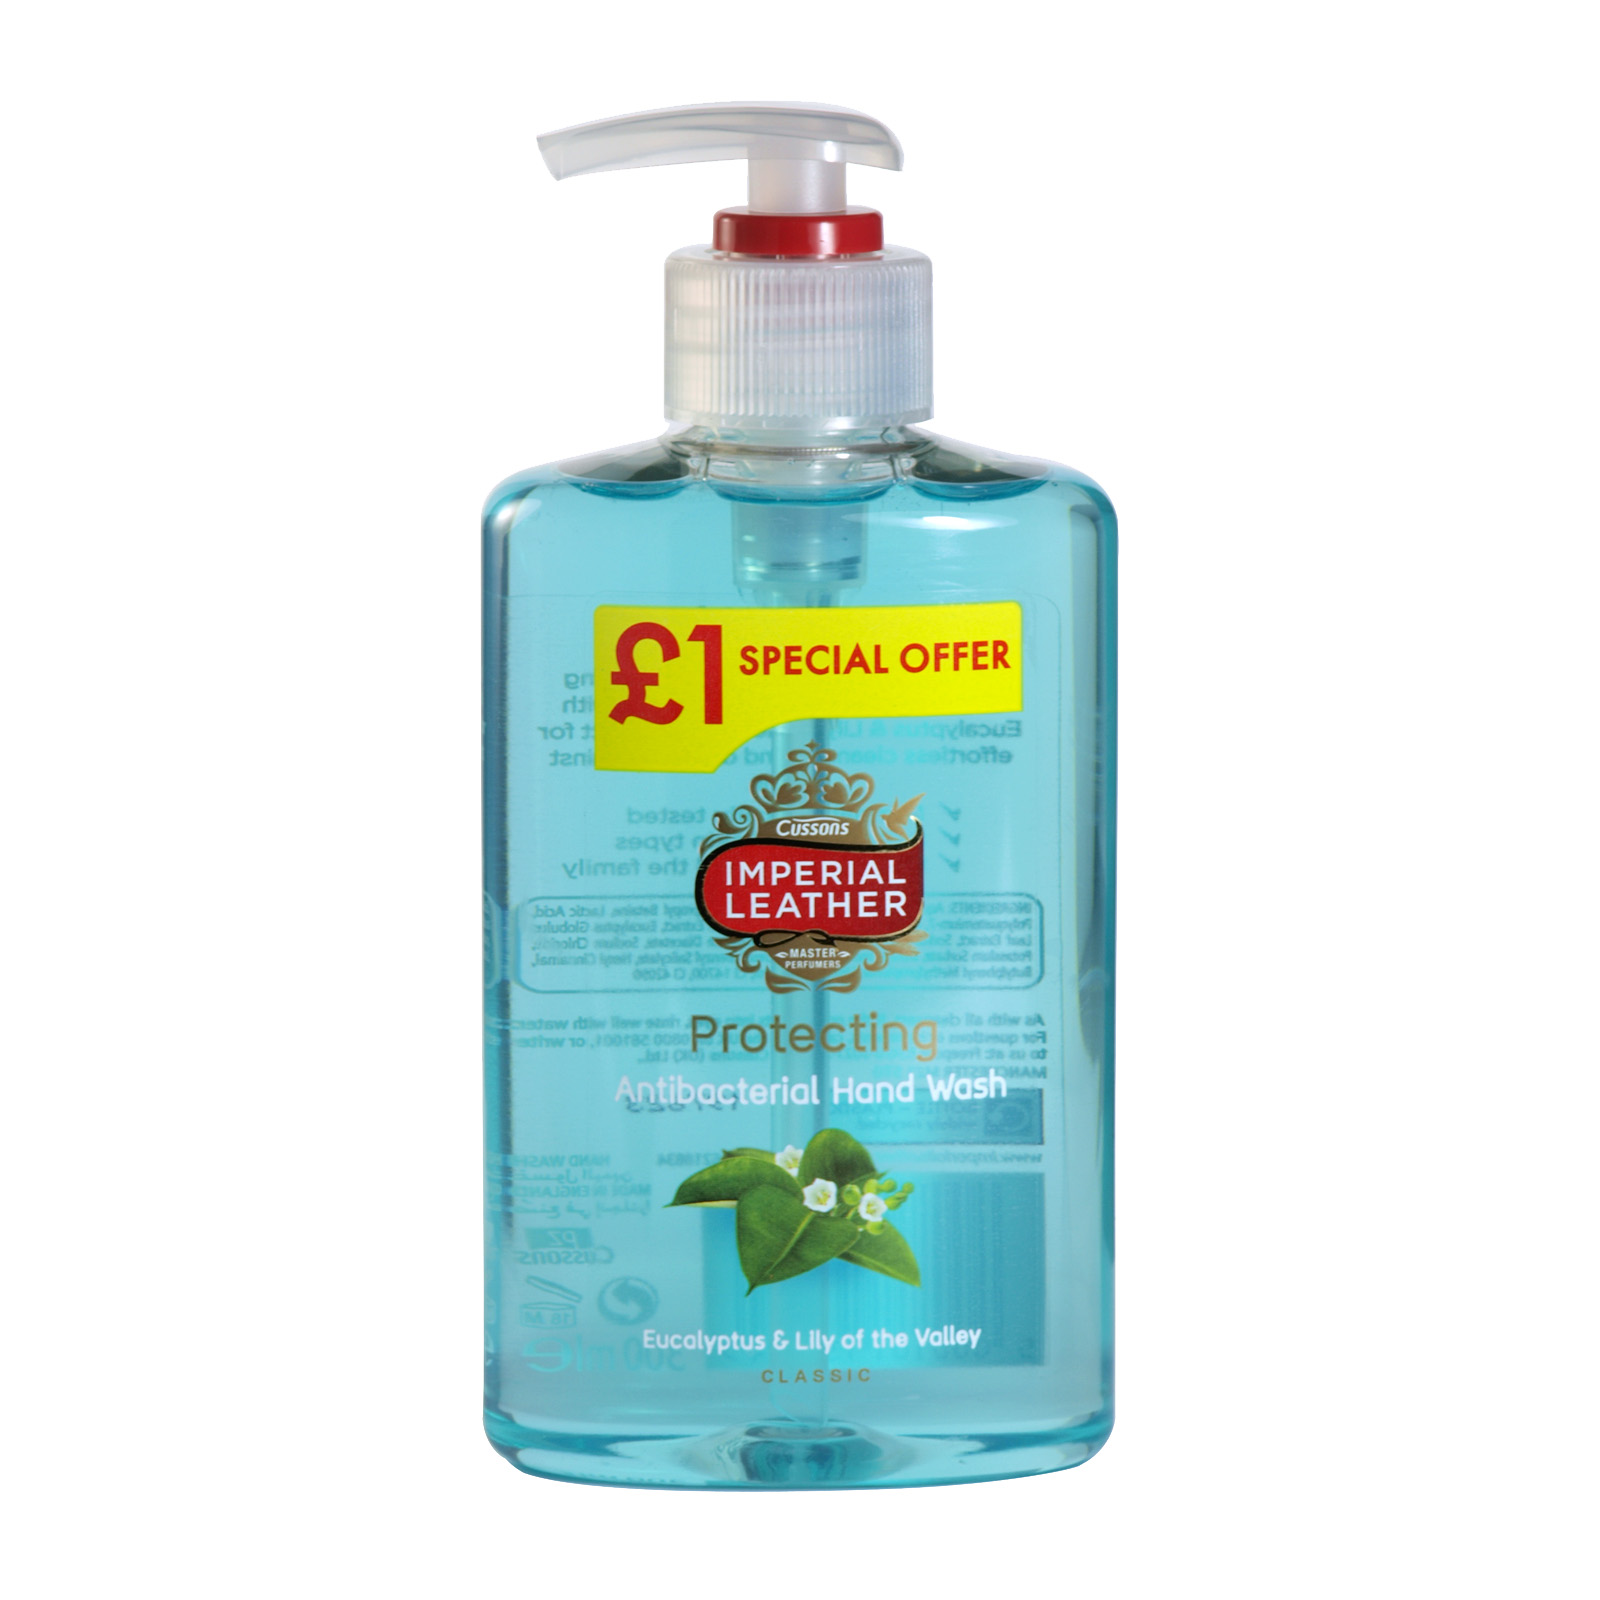 IMPERIAL LEATHER HANDWASH 300ML PROTECTING PM ?1 X6